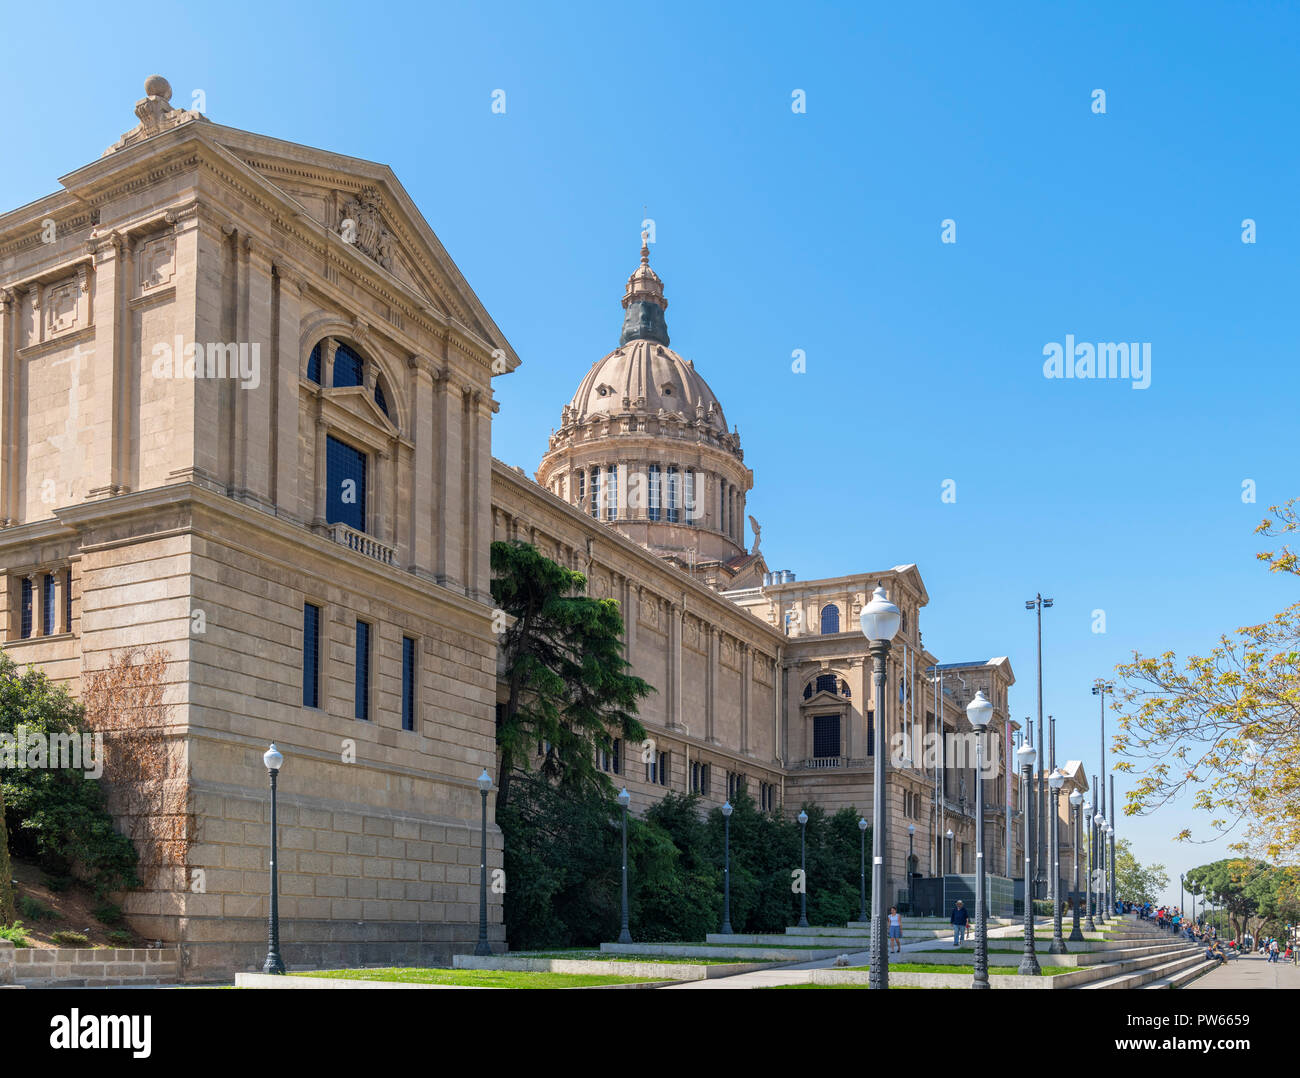 The National Art Museum of Catalonia - Museu Nacional d'Art de Catalunya (MNAC) - Parc de Montjuïc, Barcelona, Spain. - Stock Image